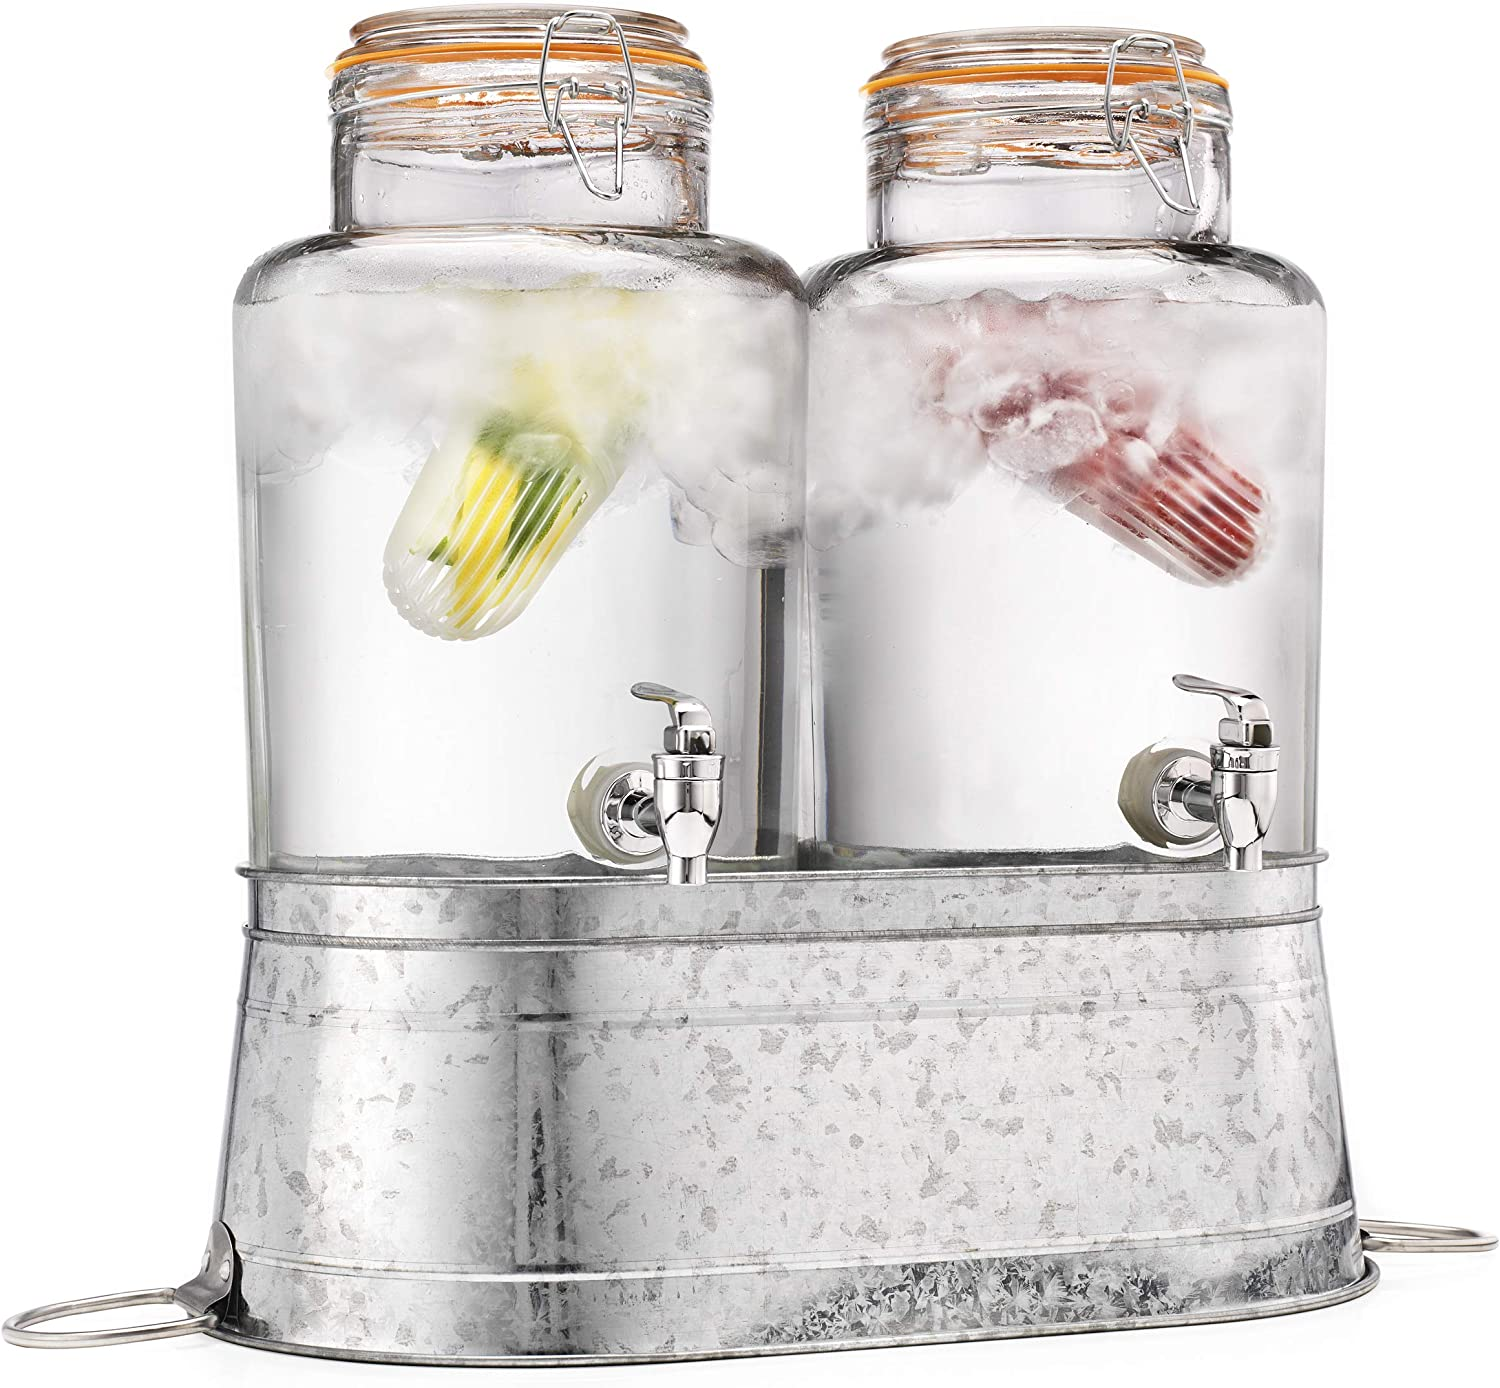 Classic Home Two (2) 1 Gallon Each Quality Ice Cold Clear Glass Jug Beverage Dispensers Hermetic Seal Galvanized Stand Display